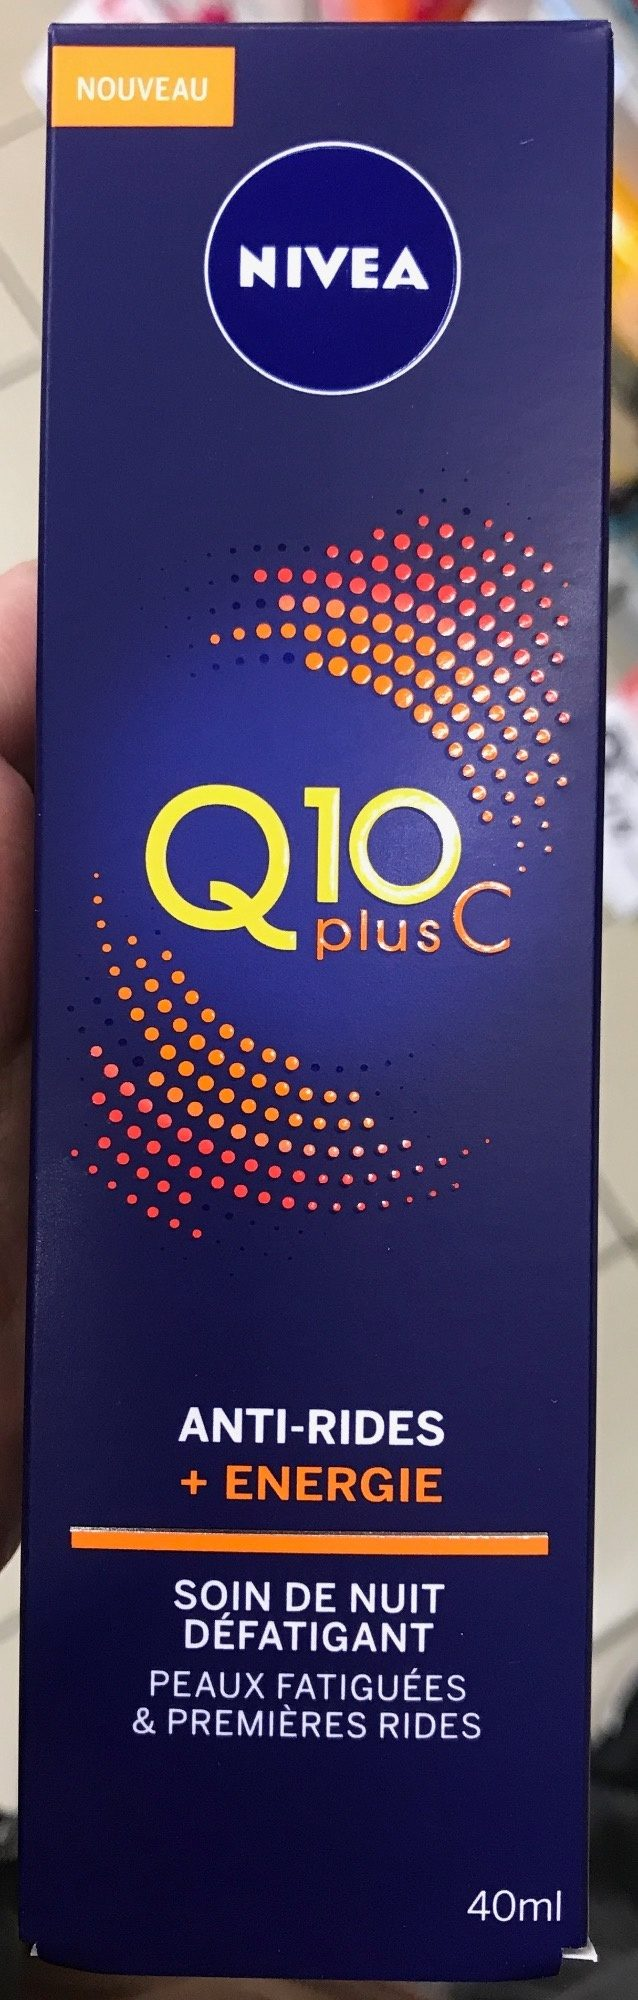 Q10 plus C Anti-rides + Energie - Product - fr